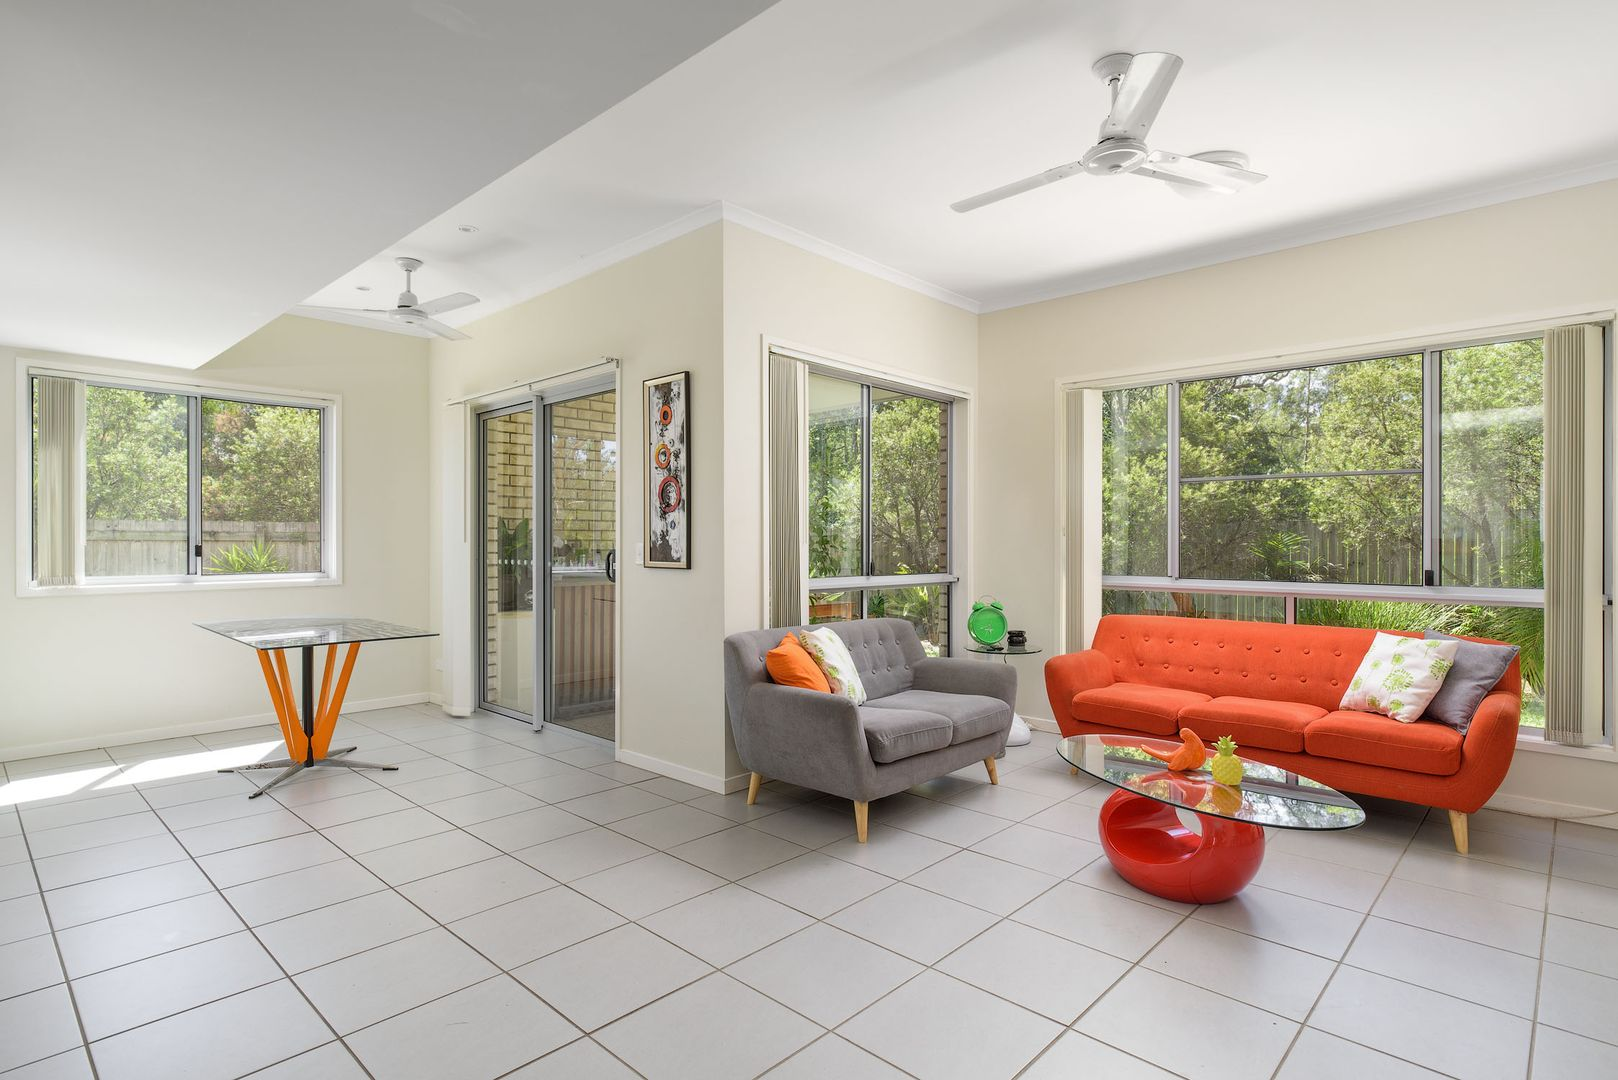 1/14 Banksia Drive, Gympie QLD 4570, Image 1